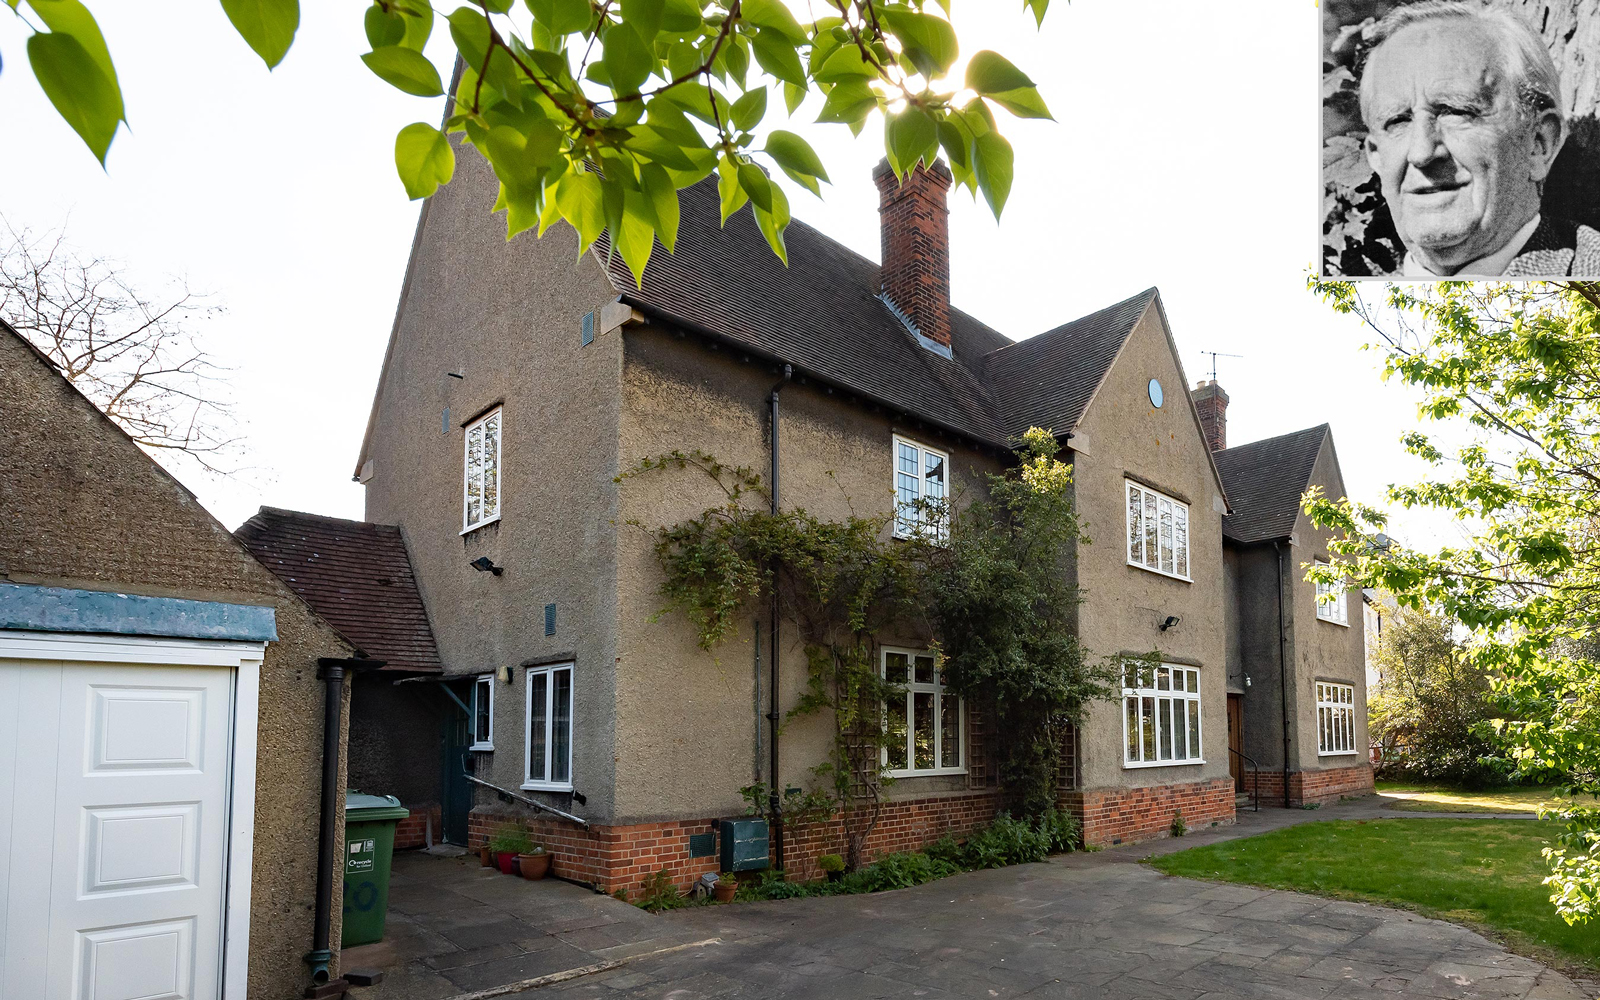 Long-time home of author J.R.R Tolkien